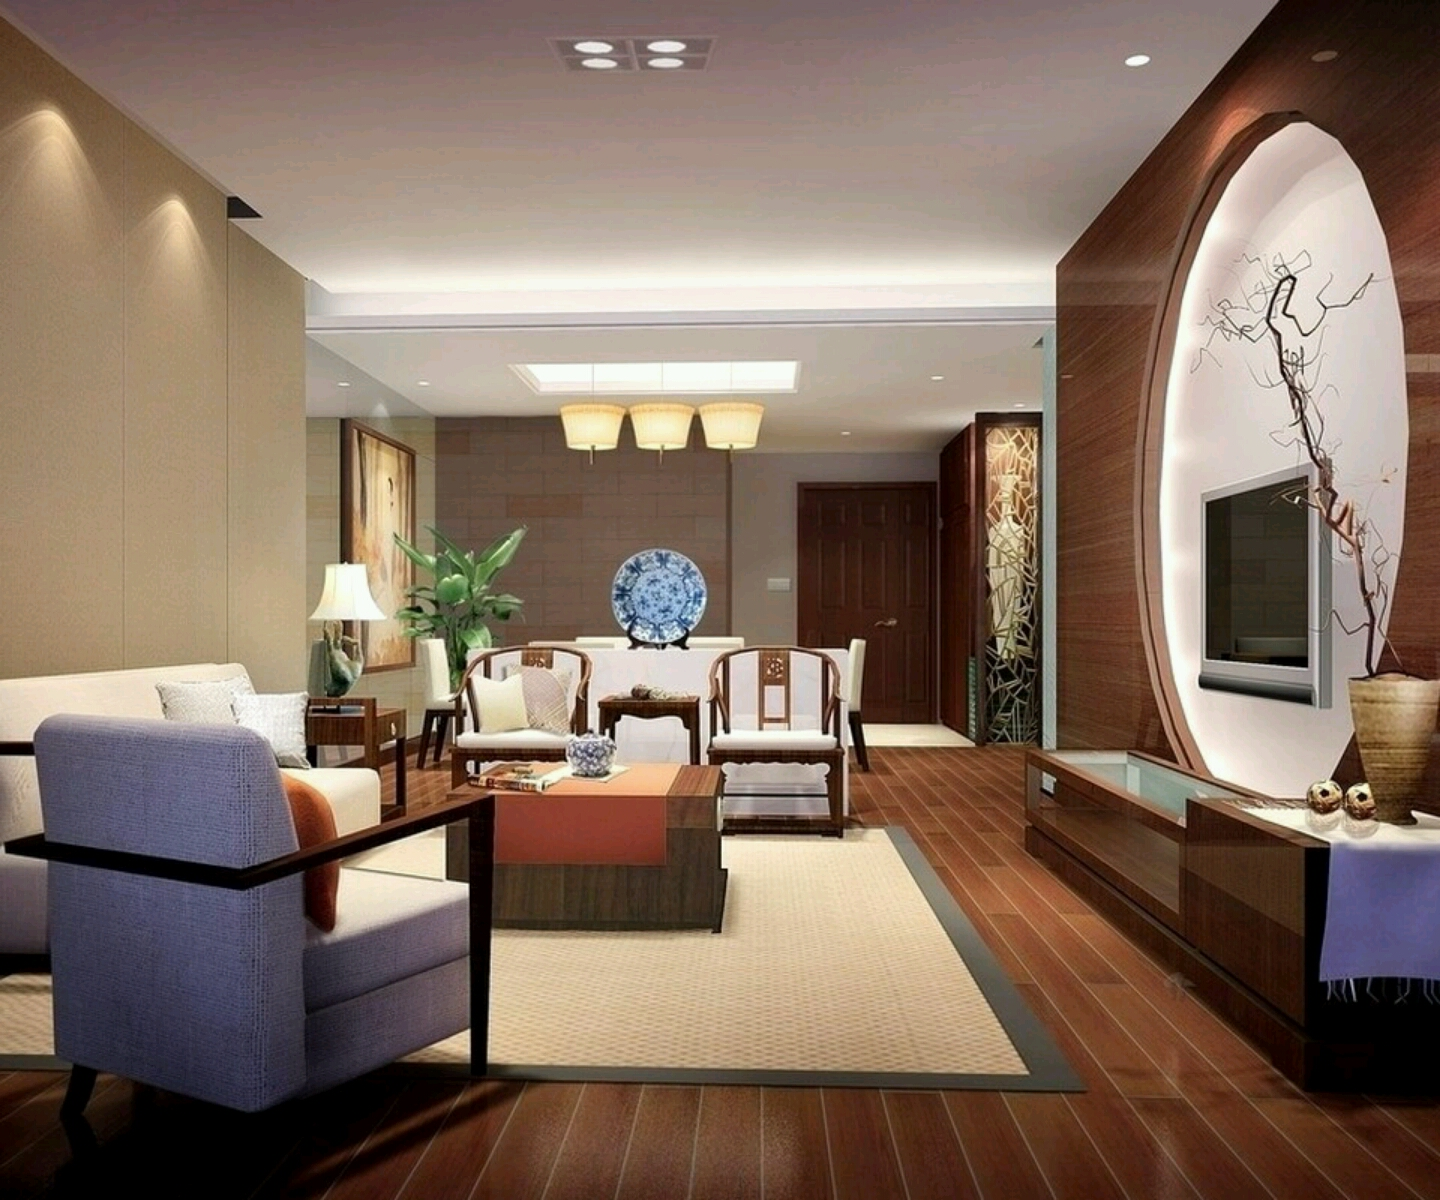 Luxury homes interior decoration living room designs ideas for Interior design for living room images